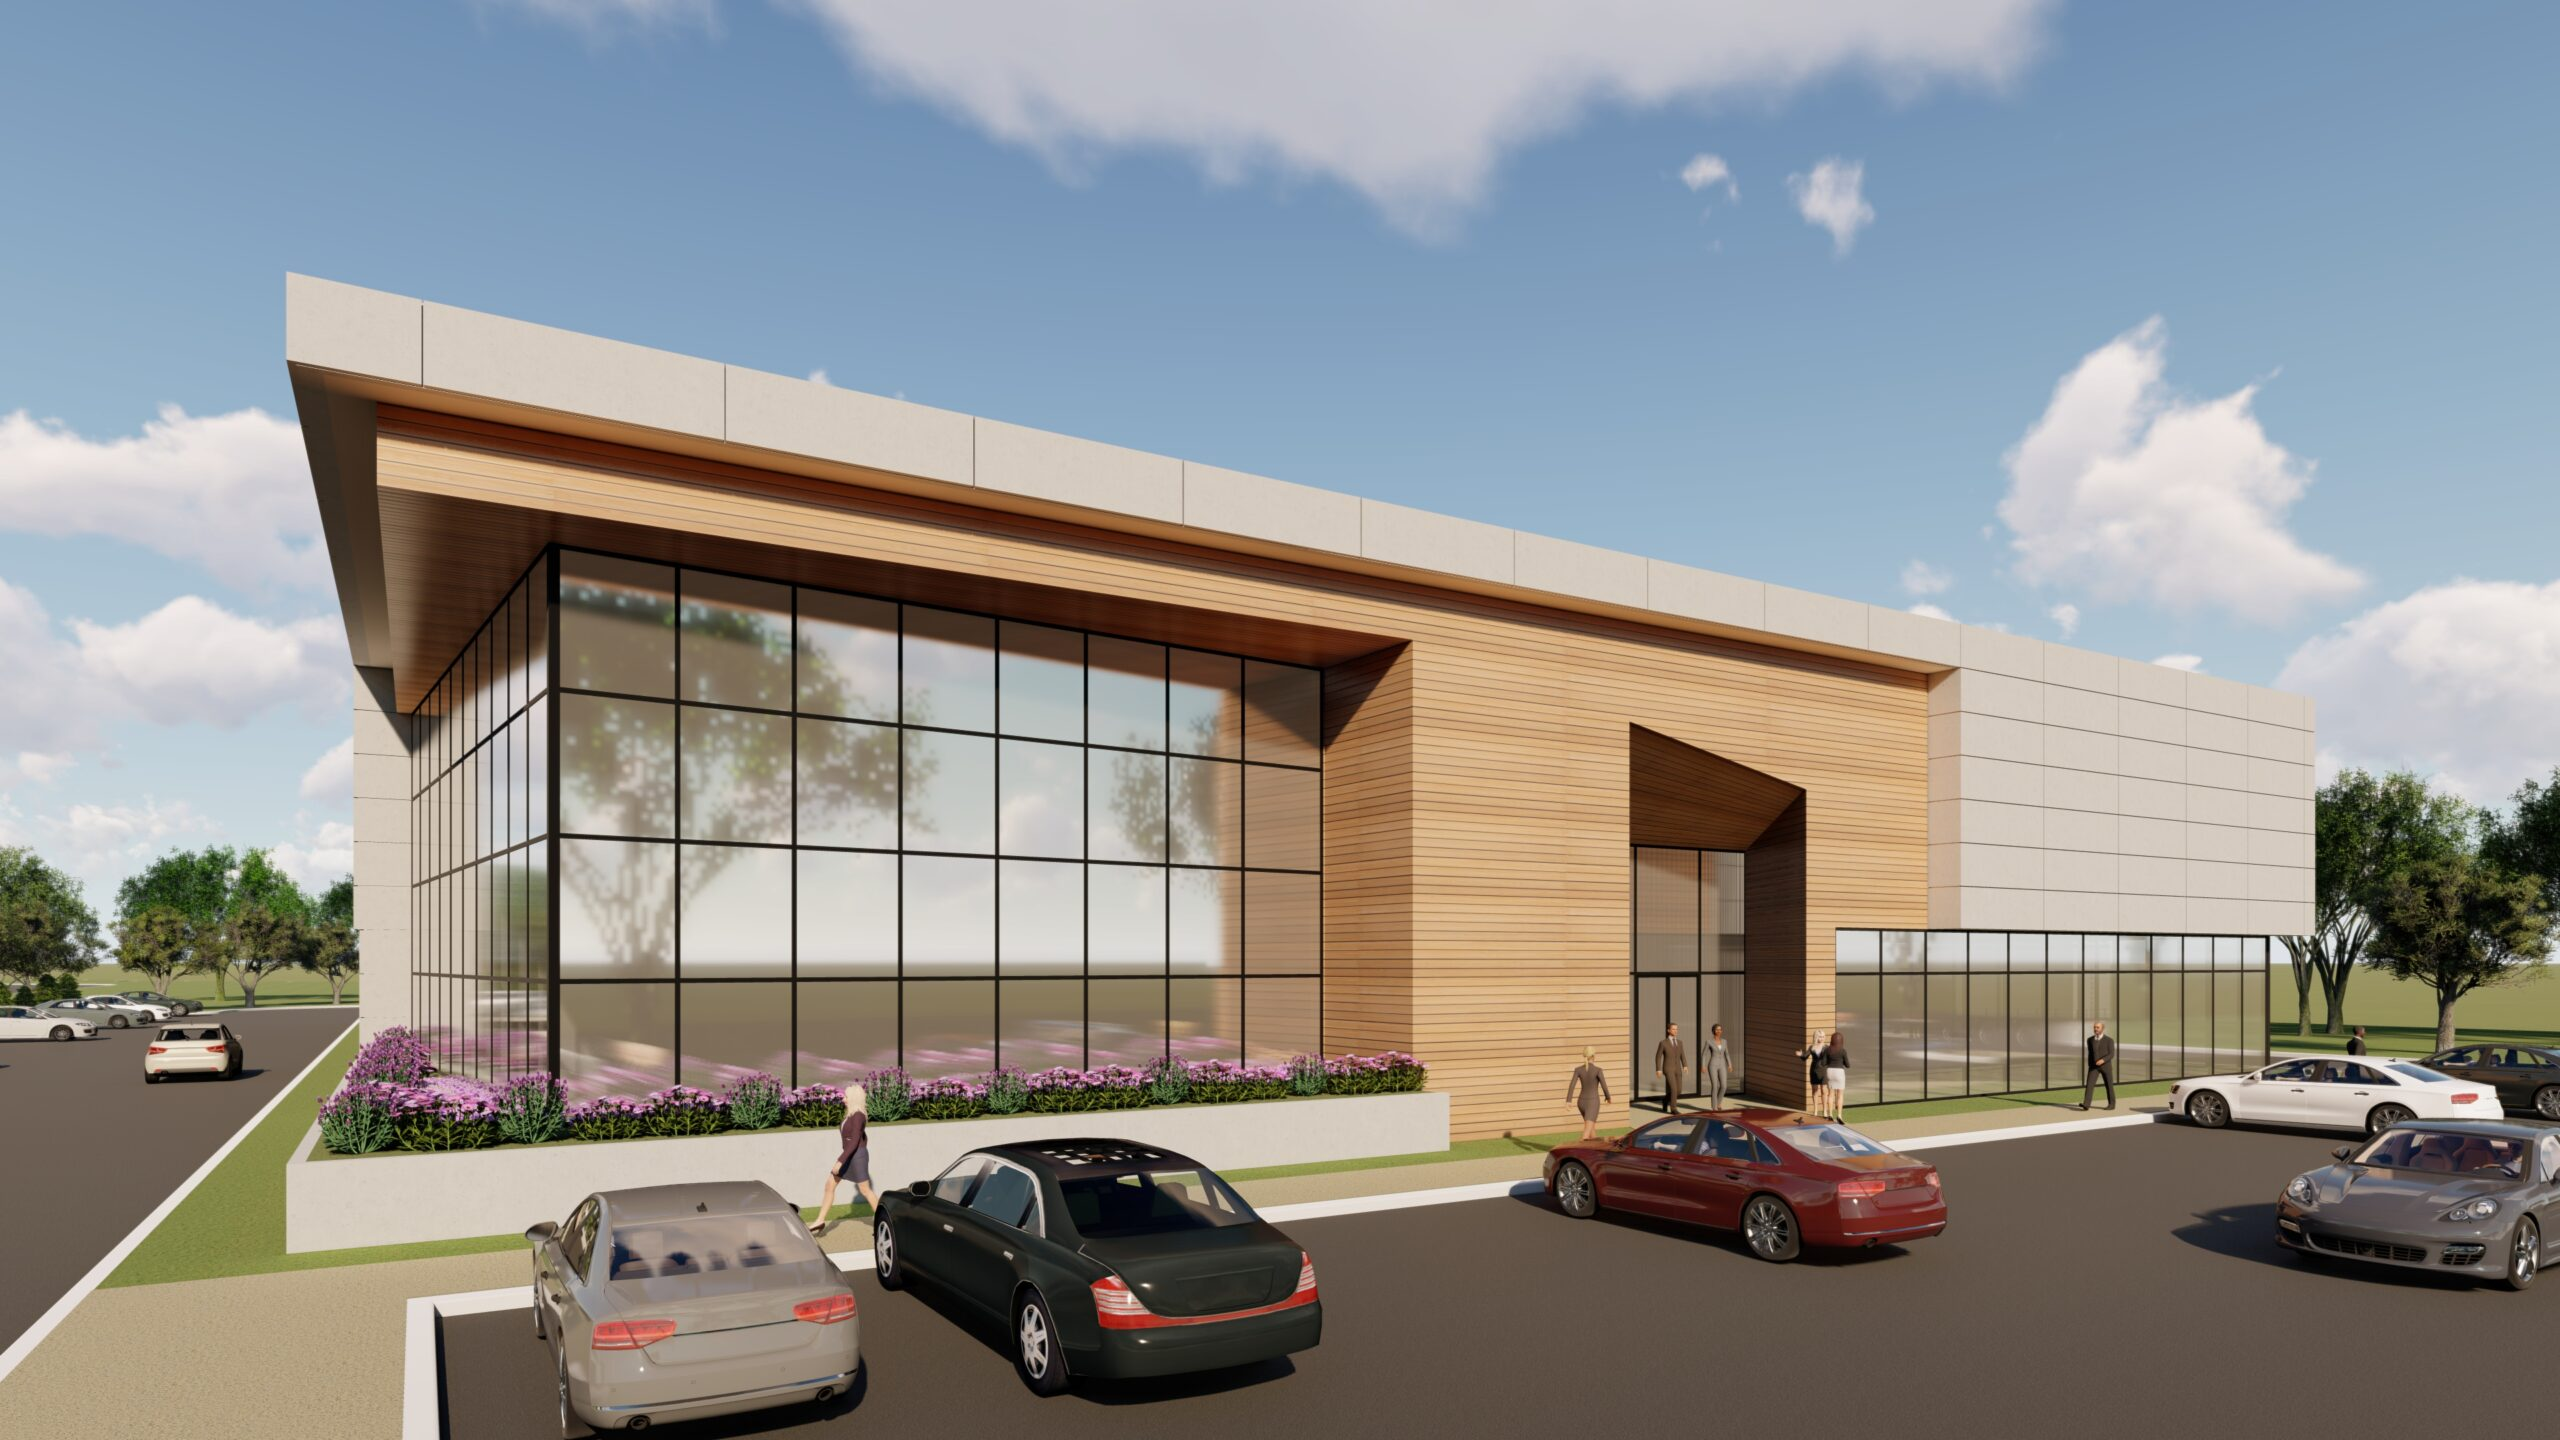 20-07-14-Warehouse-3d-renderings_4-Photo_add-to-web-scaled